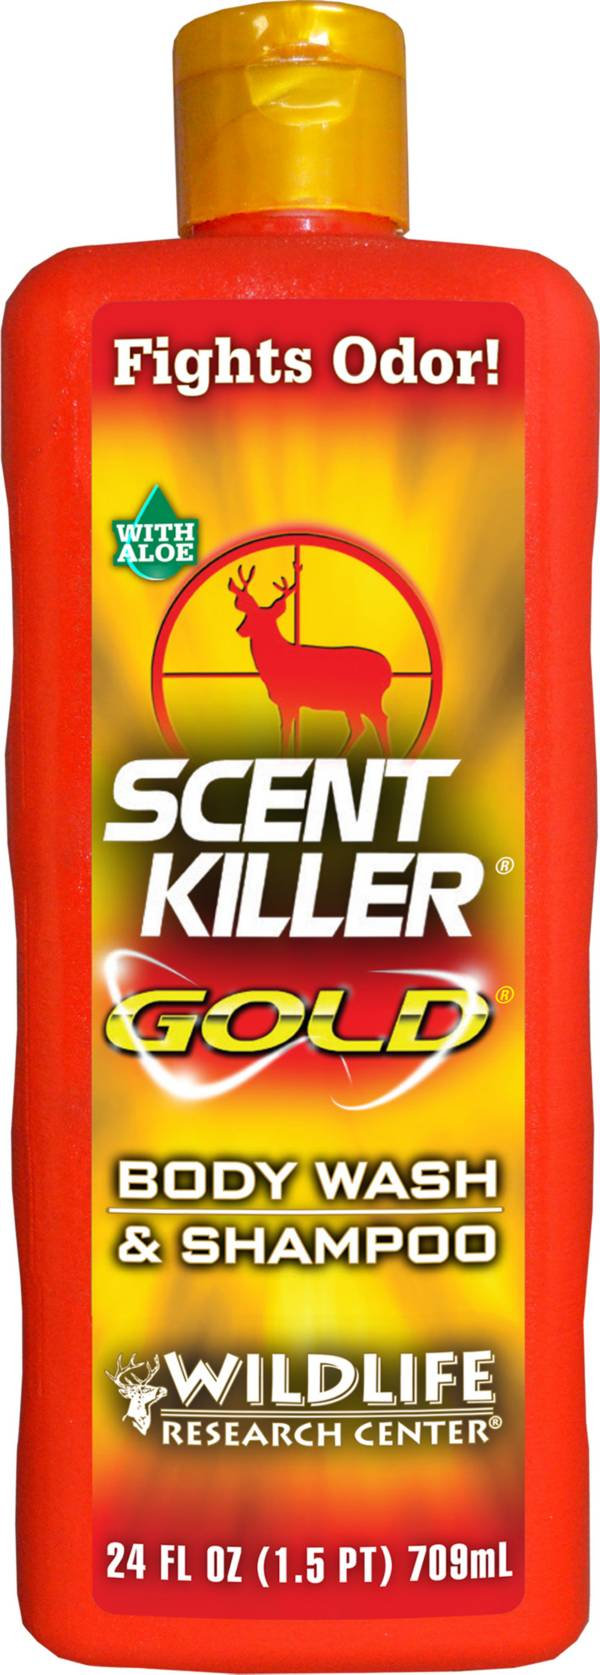 Wildlife Research Center Scent Killer Gold Body Wash & Shampoo - 24 oz product image